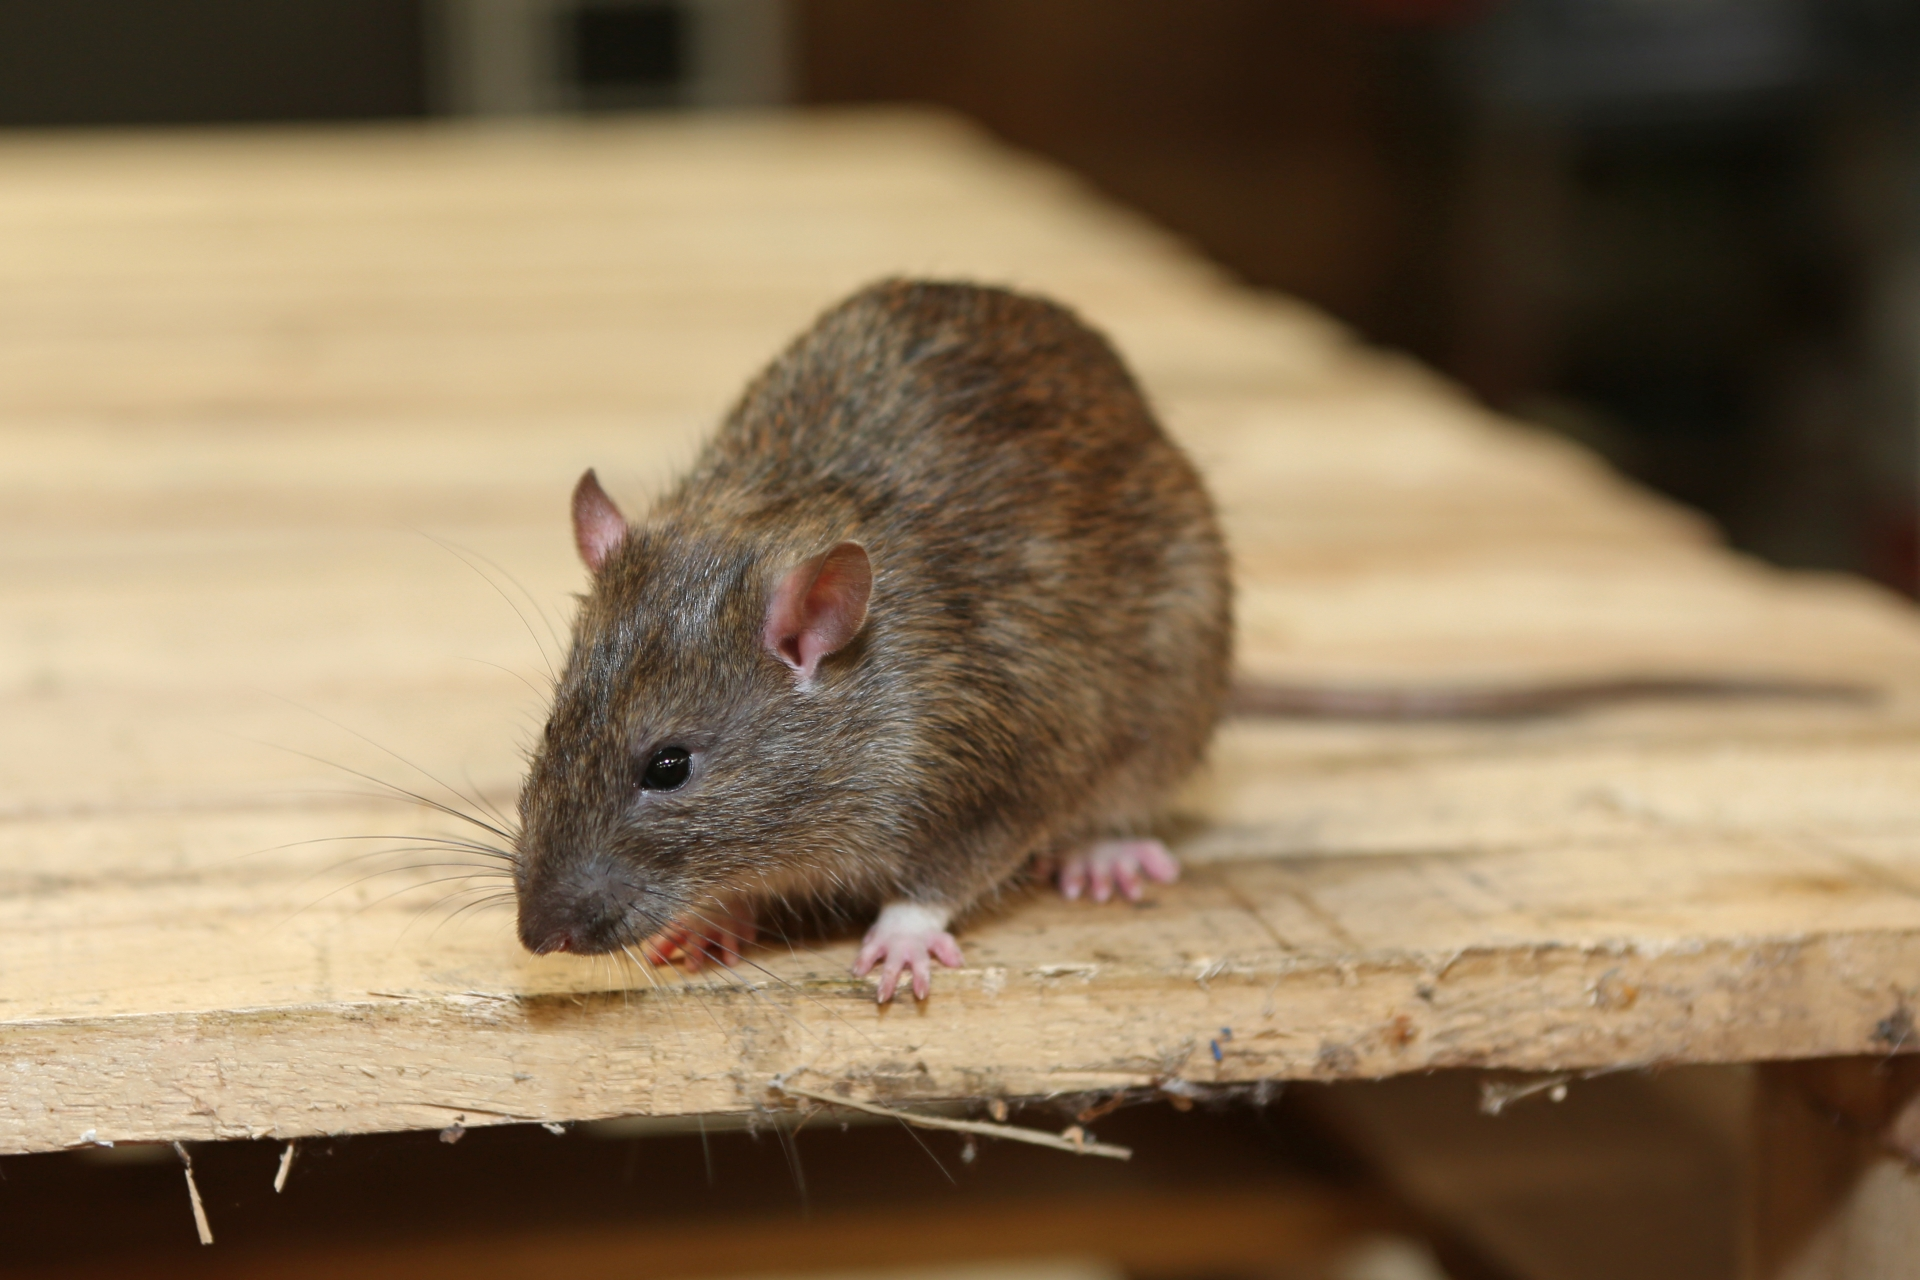 Rat extermination, Pest Control in Potters Bar, Cuffley, Northaw, EN6. Call Now 020 8166 9746